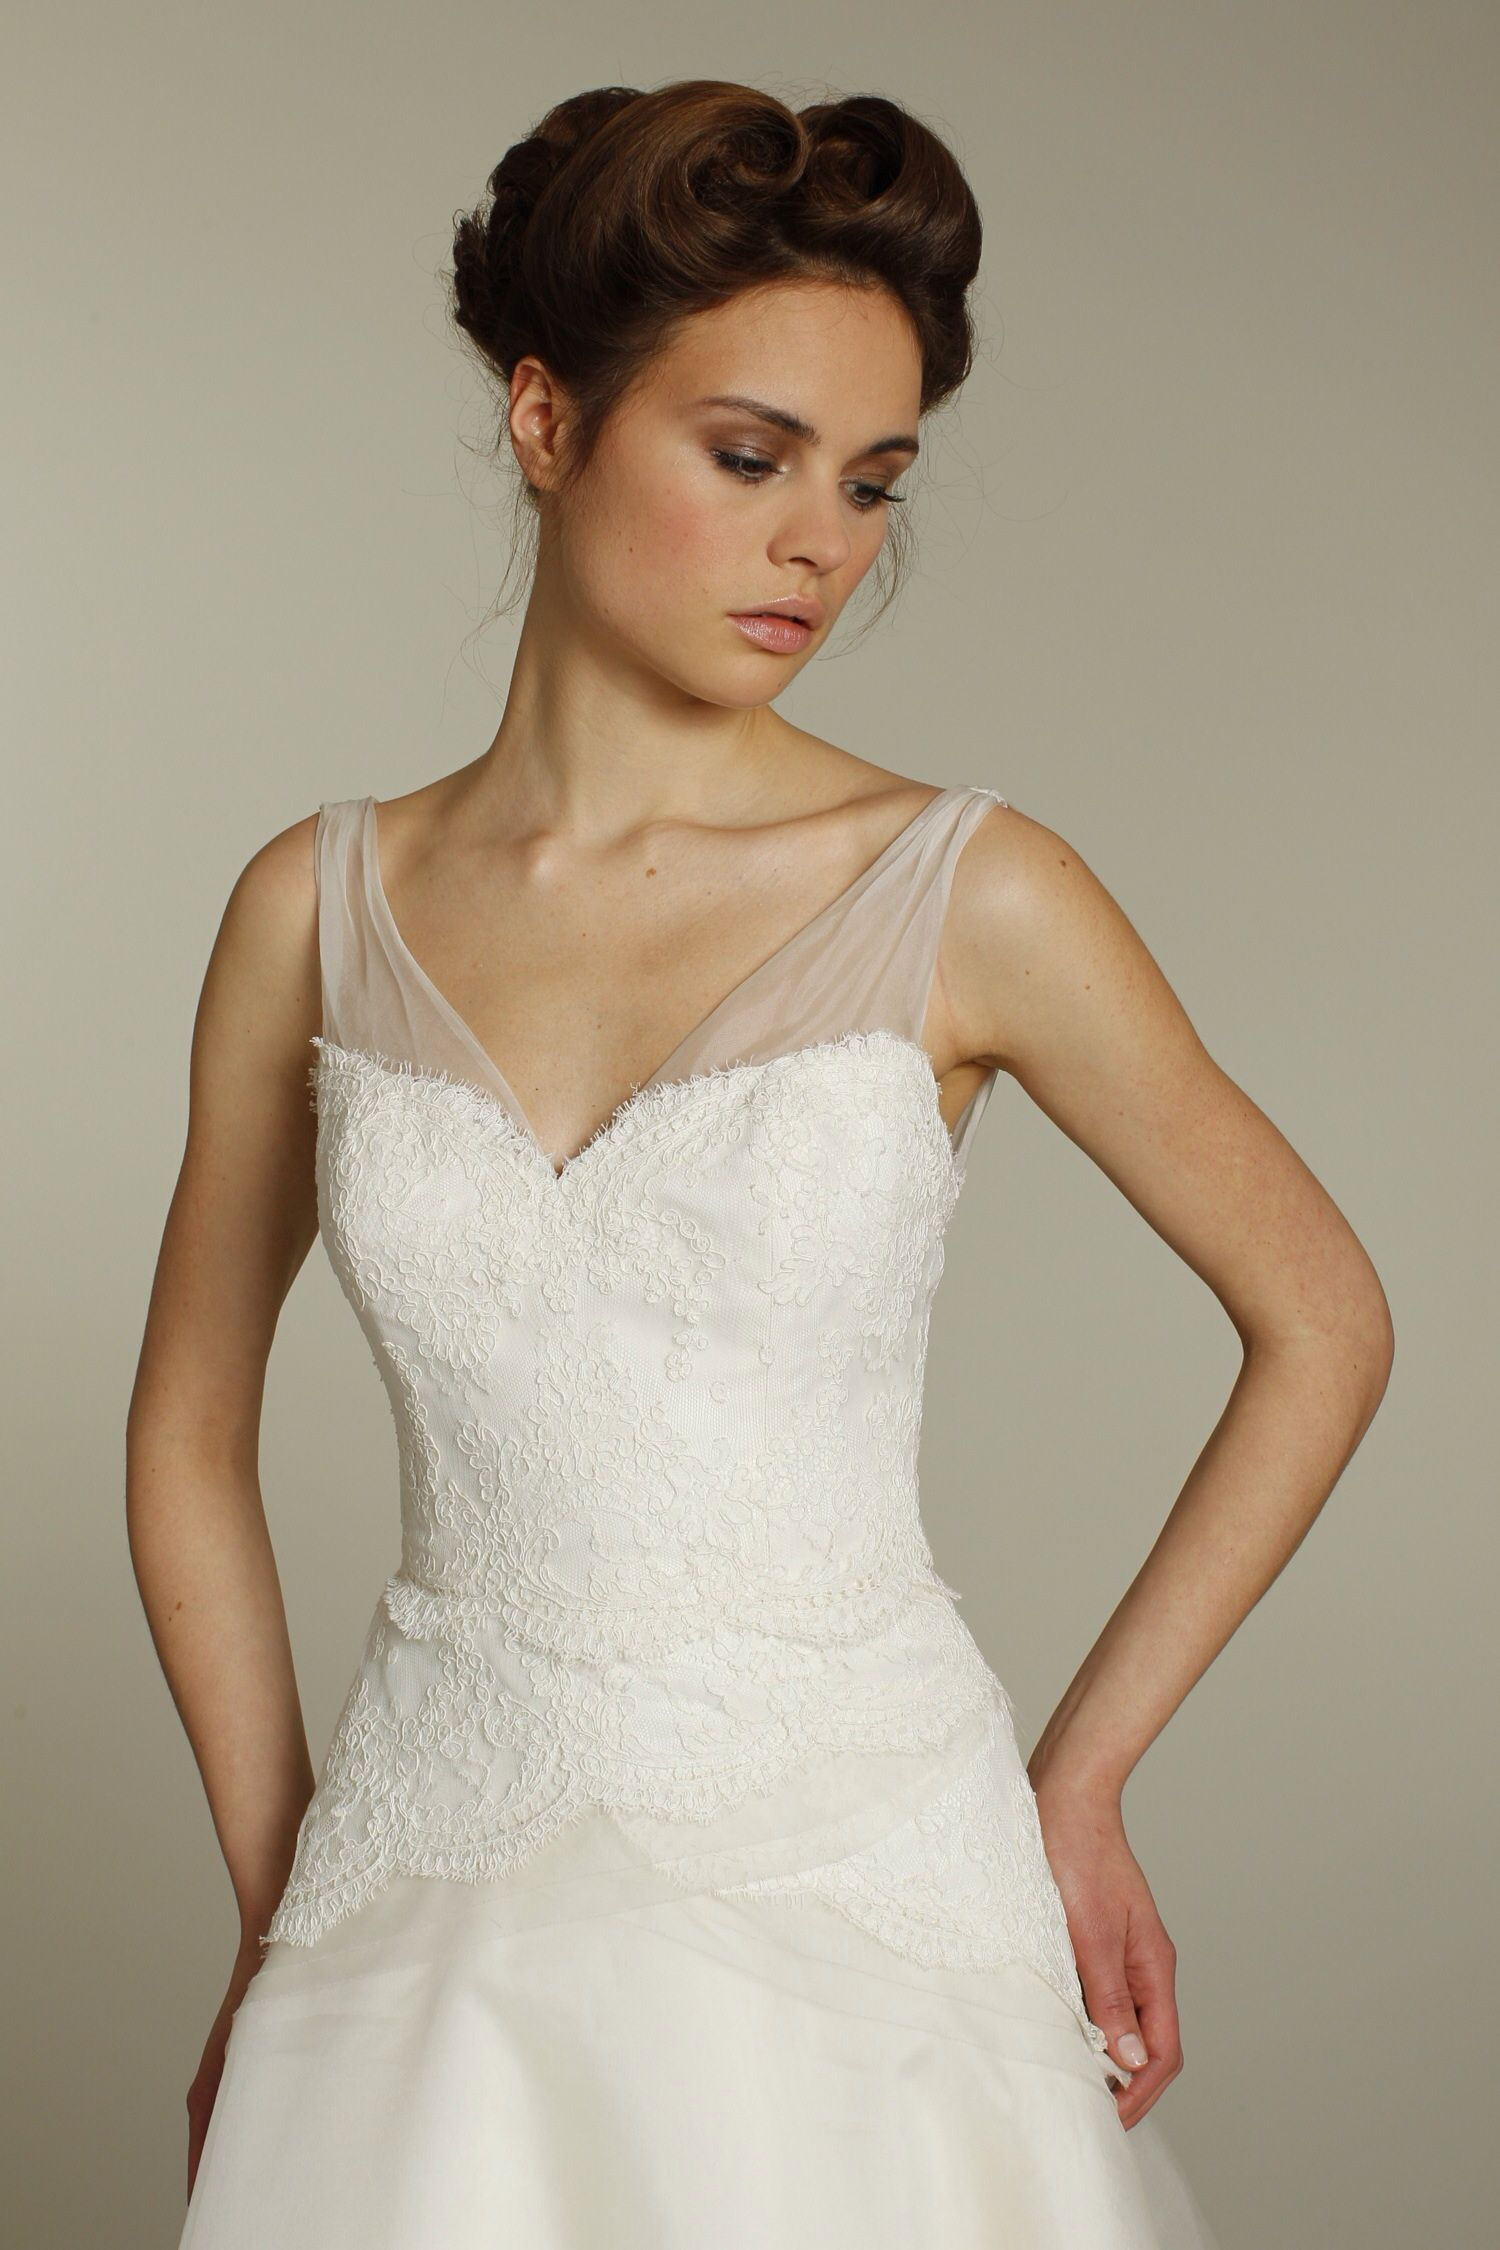 Has anyone added an illusion neckline to a strapless wedding dress